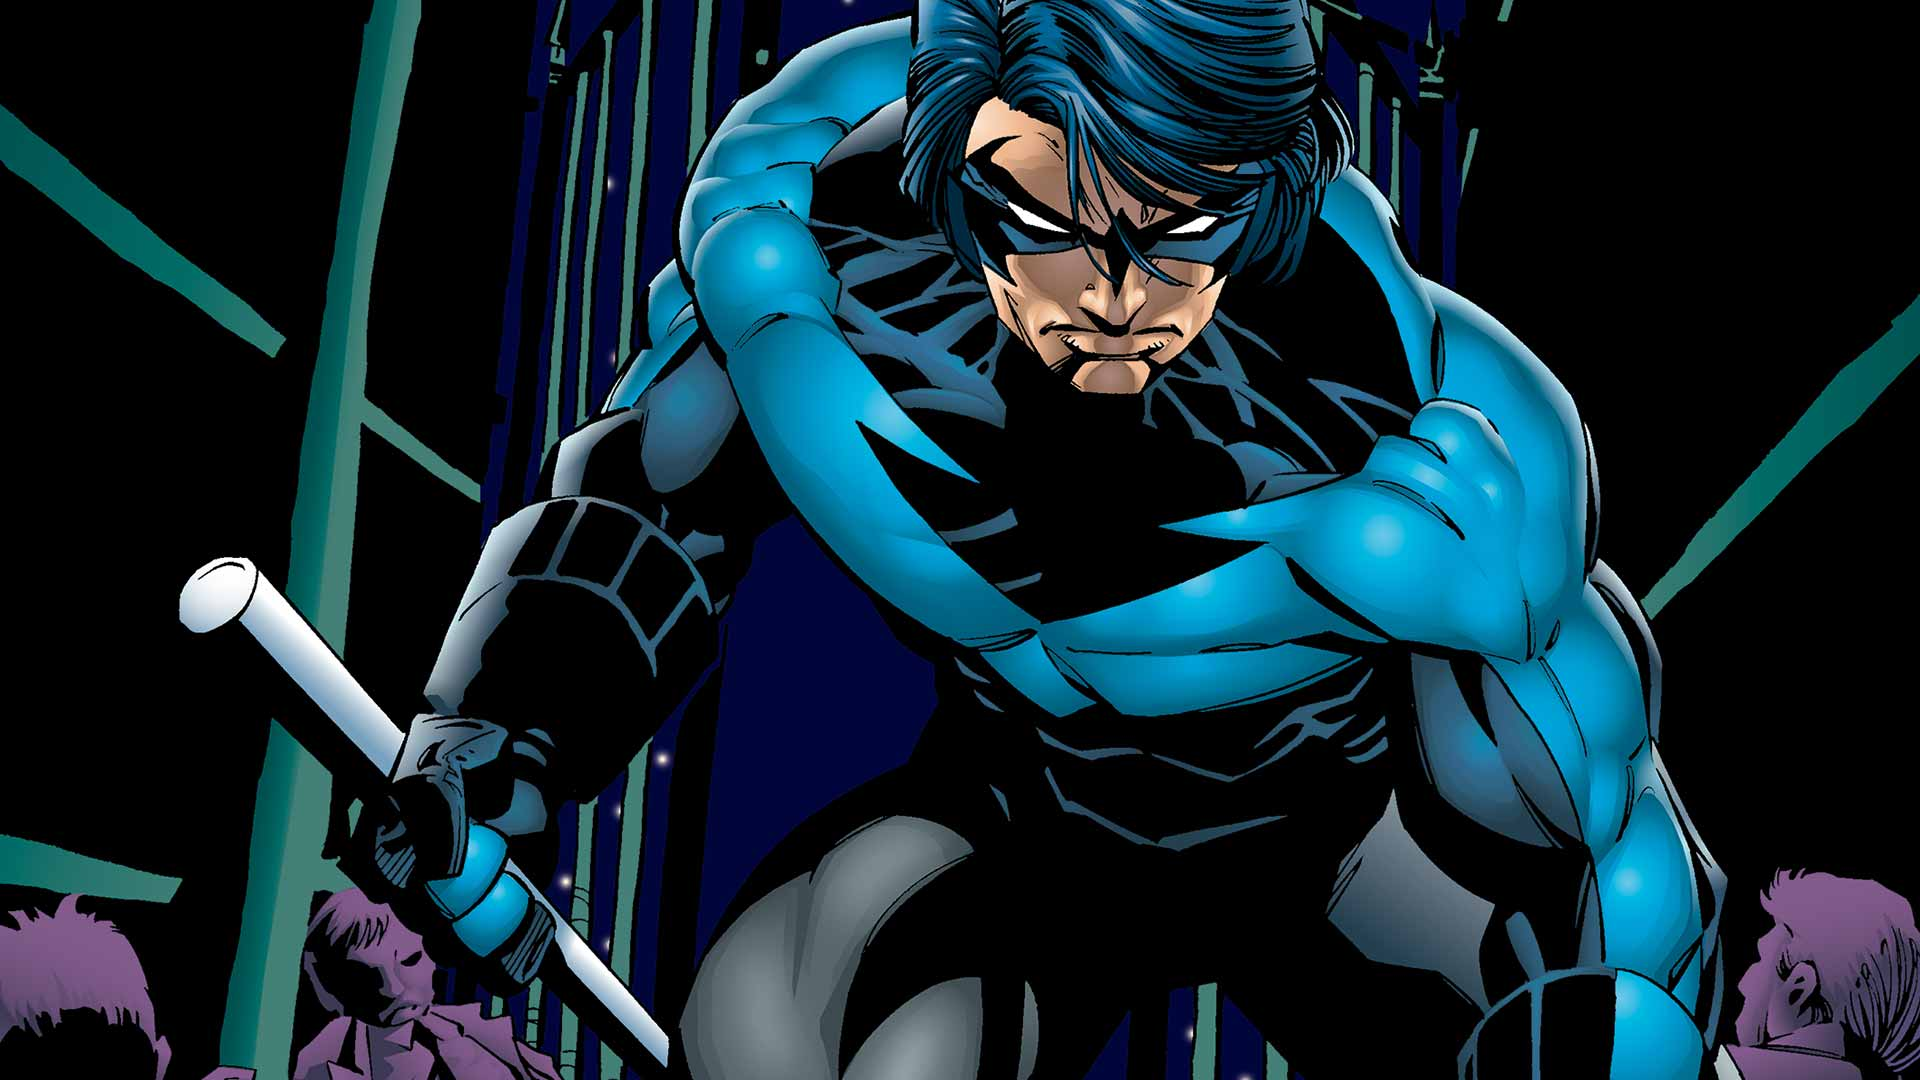 Expect News on Nightwing Movie Around Valentine's Day, Director Assures